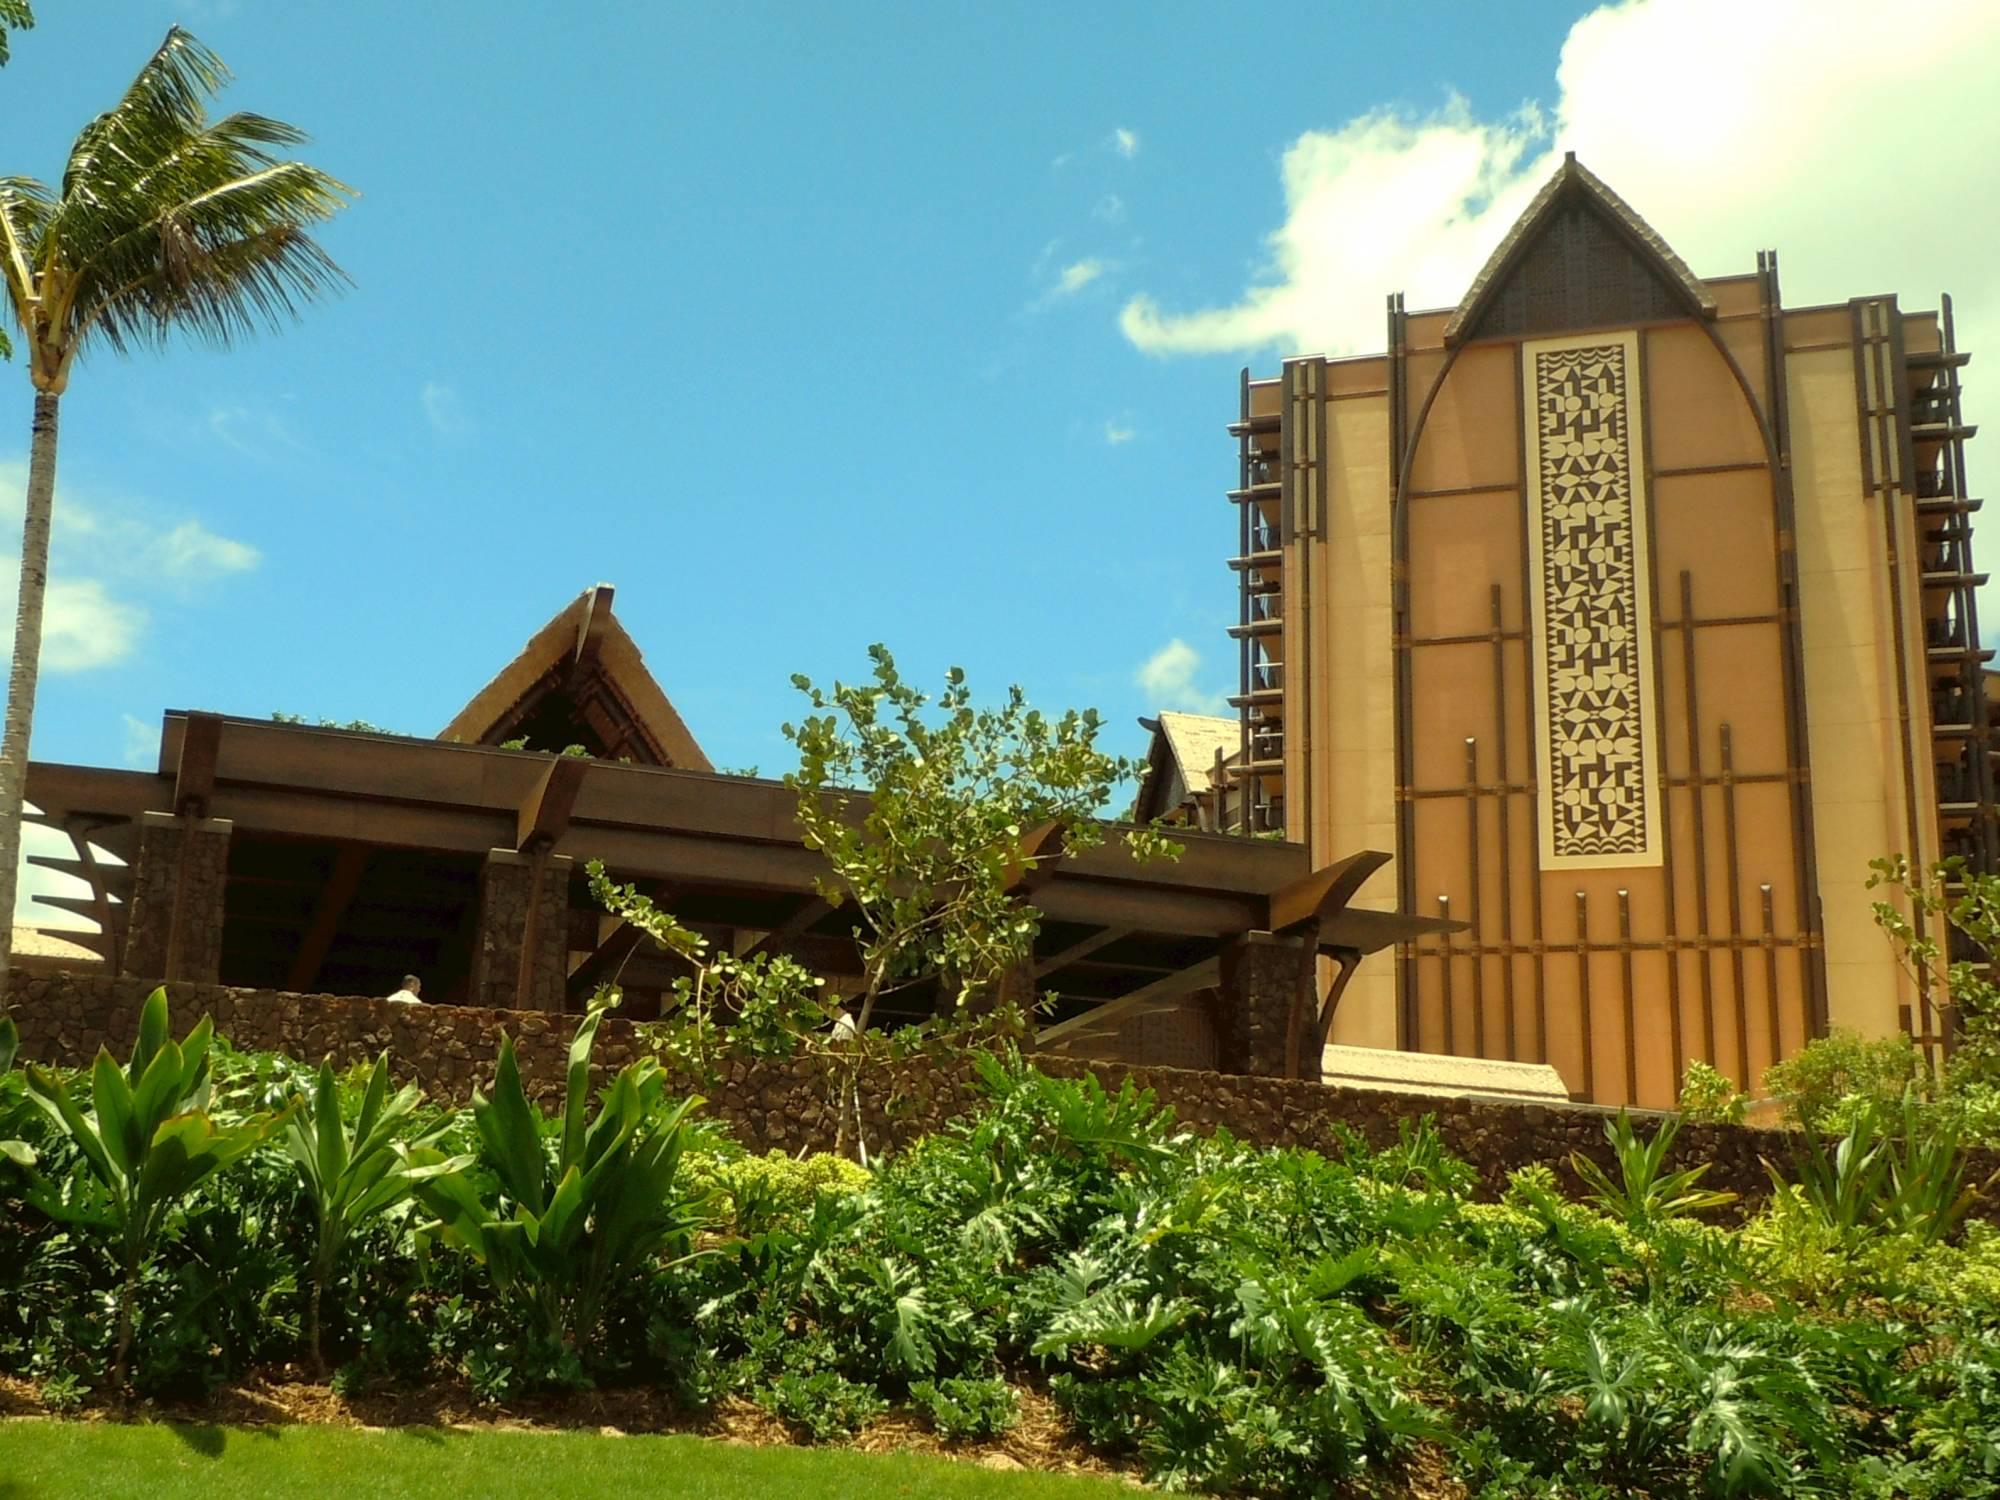 Aulani Disney Resort - The Magic Begins photo